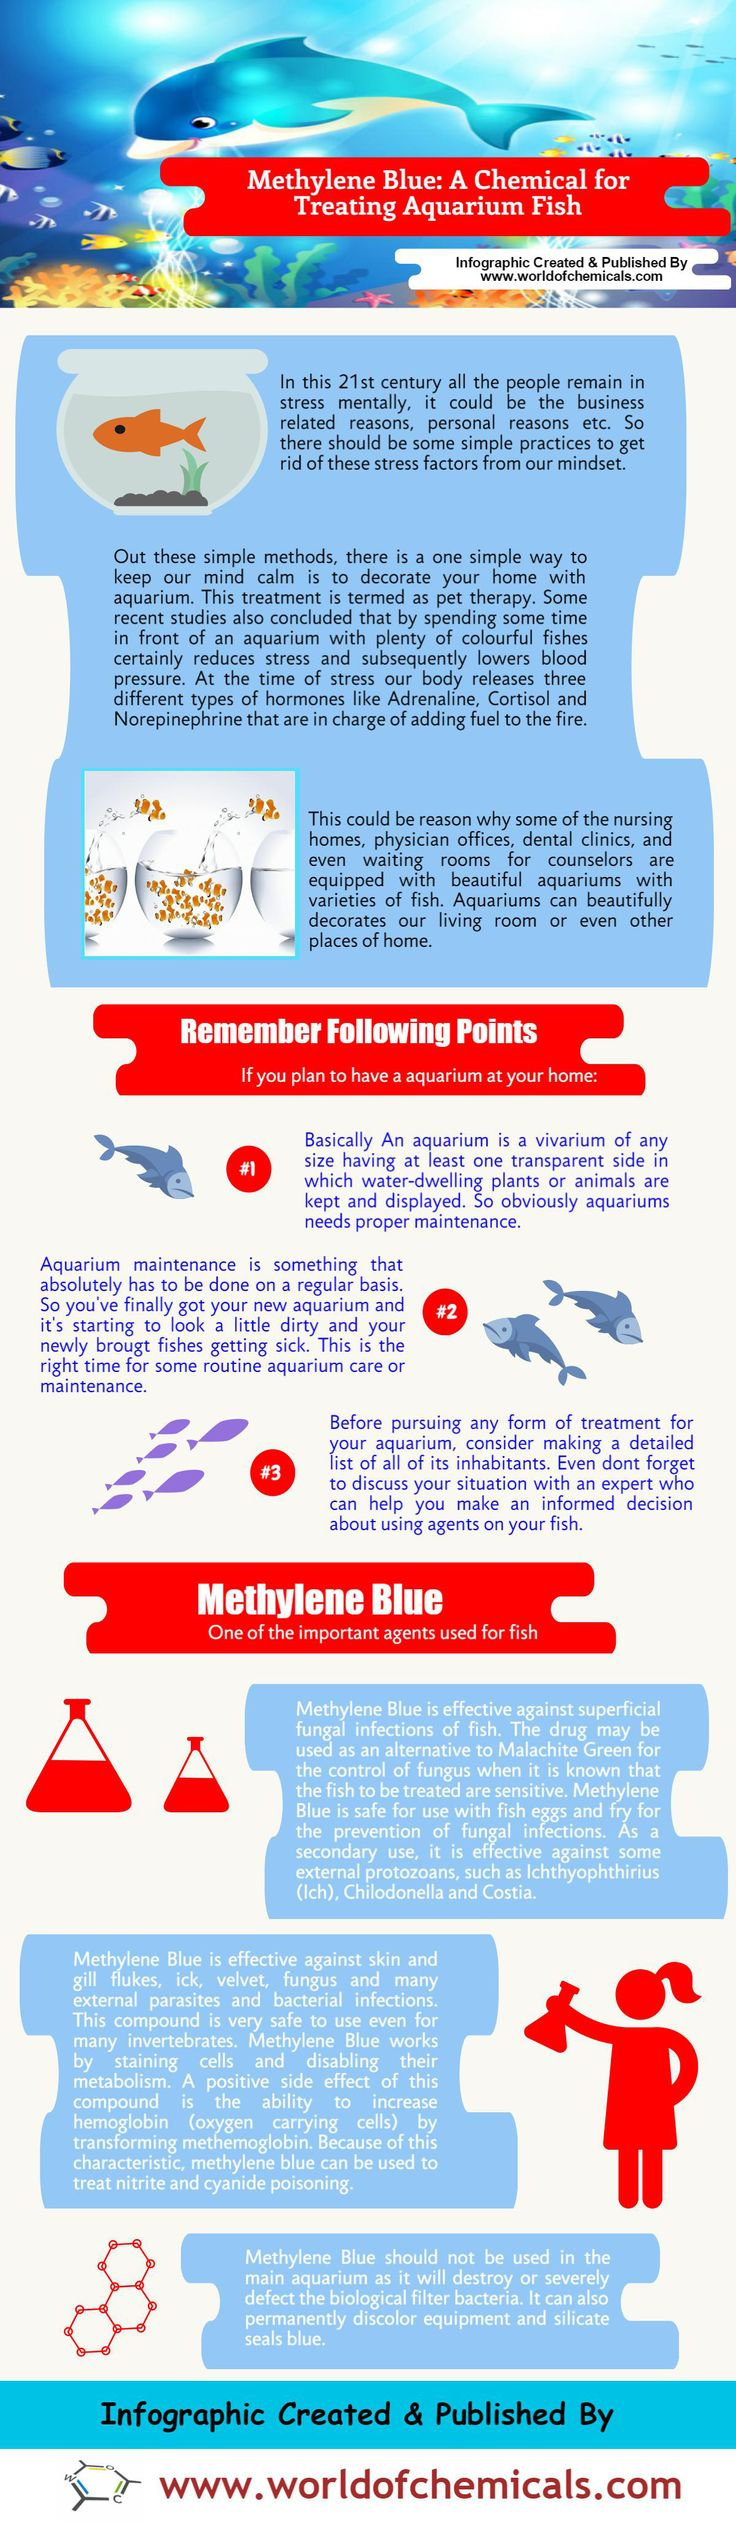 The 25 best methylene blue ideas on pinterest diet for Methylene blue for fish